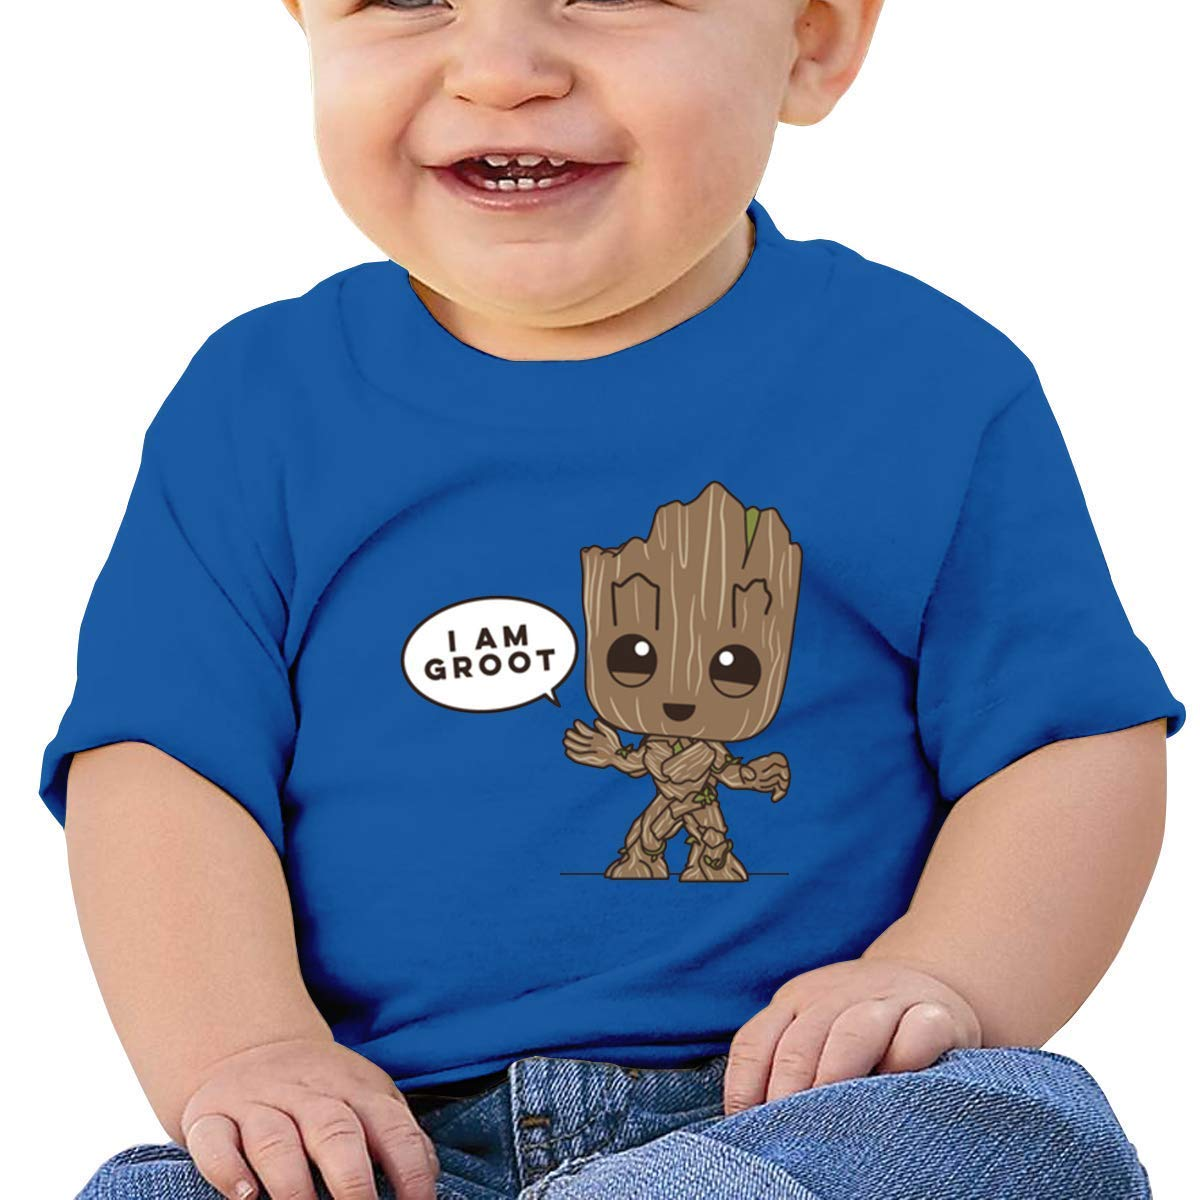 MYHL Baby Boy Girls Washed Cotton Shirt I Am Groot Cute Toddler Kids Summer Funny T Shirt